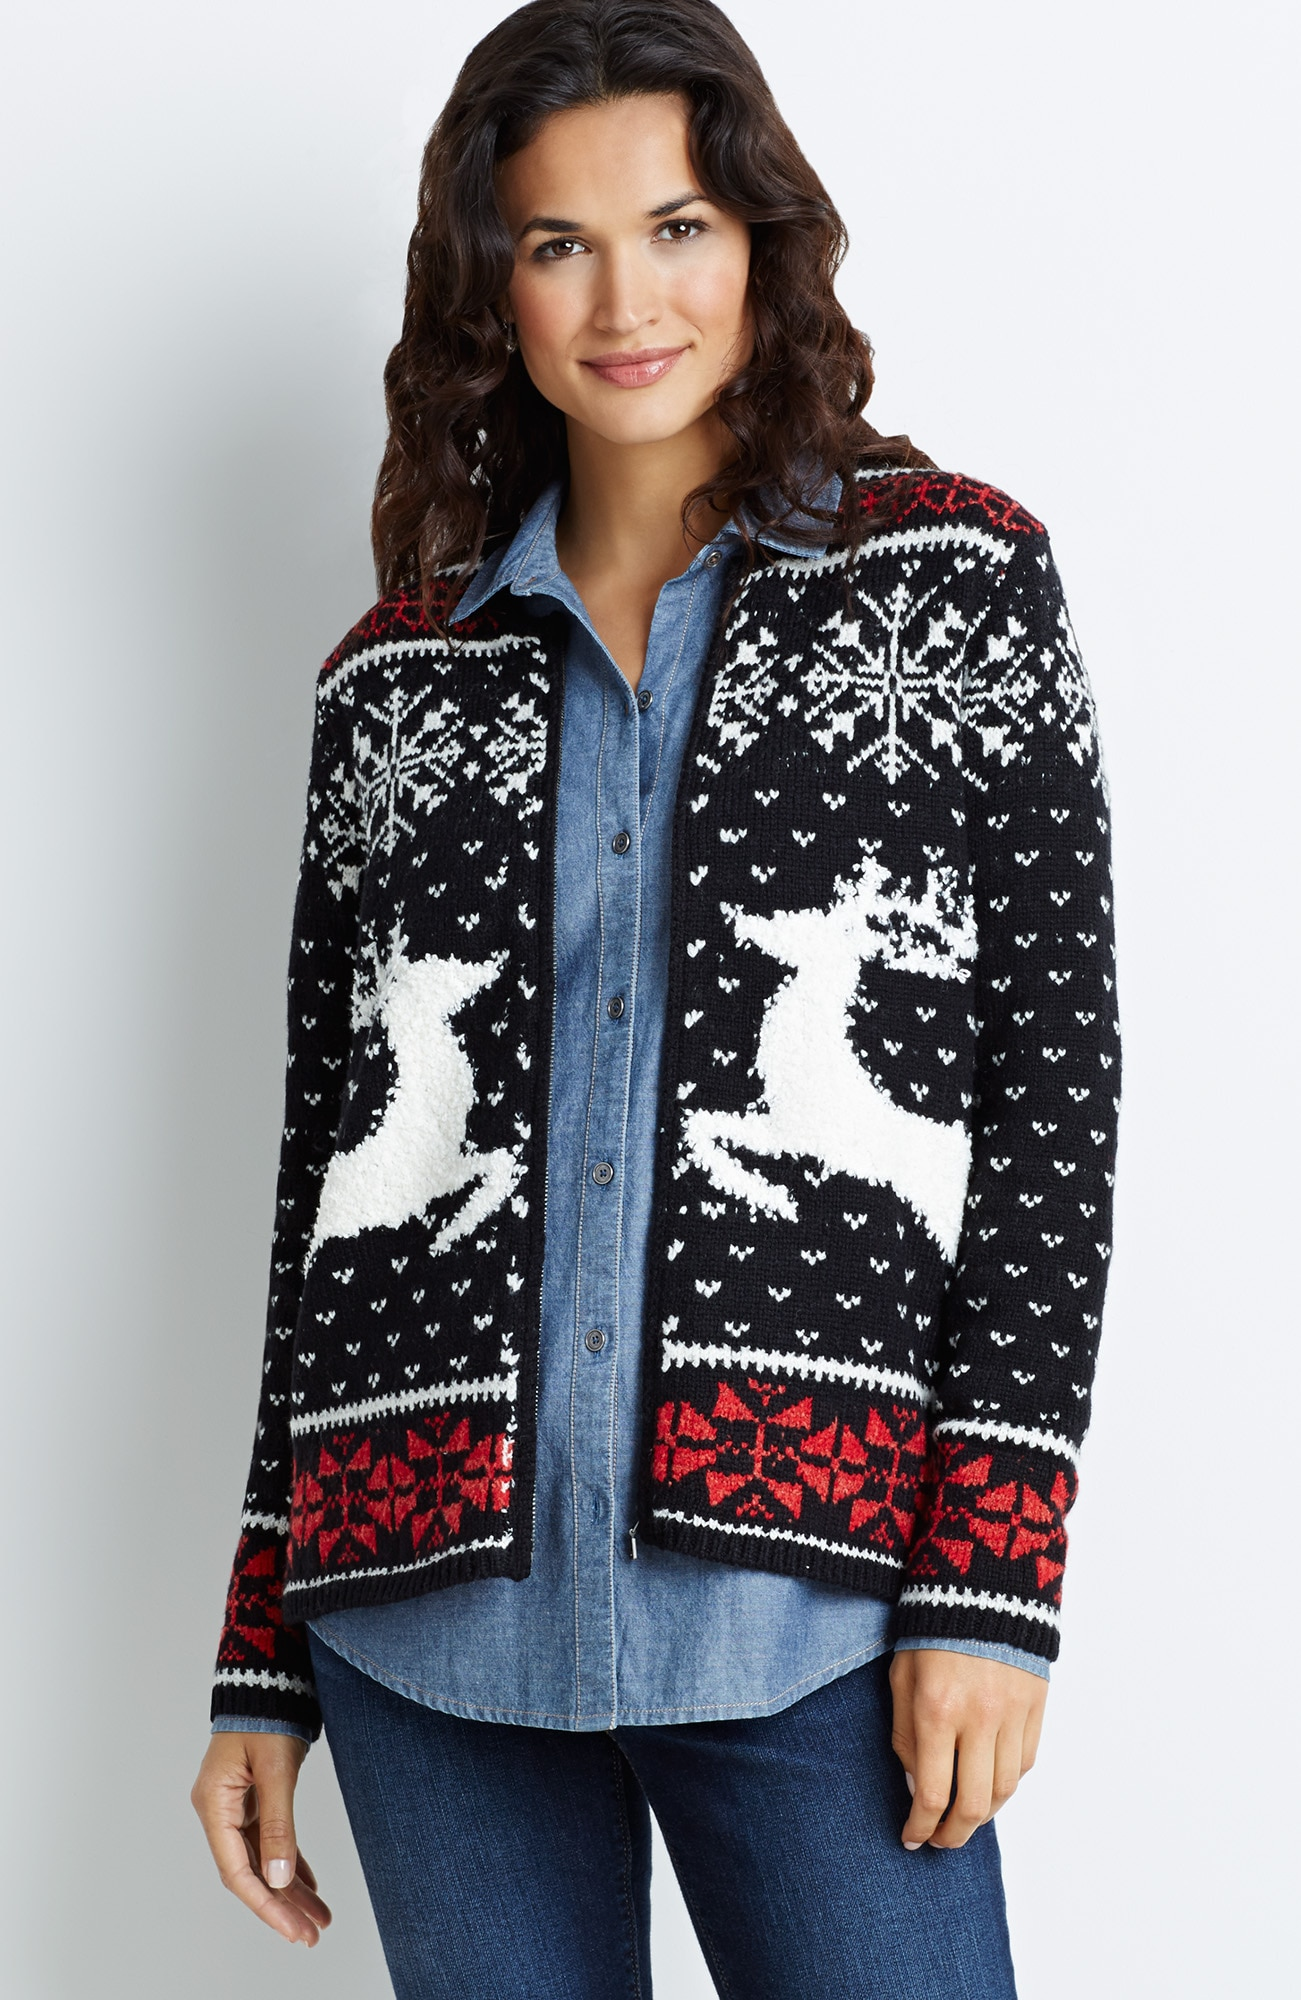 Deer Valley cardigan